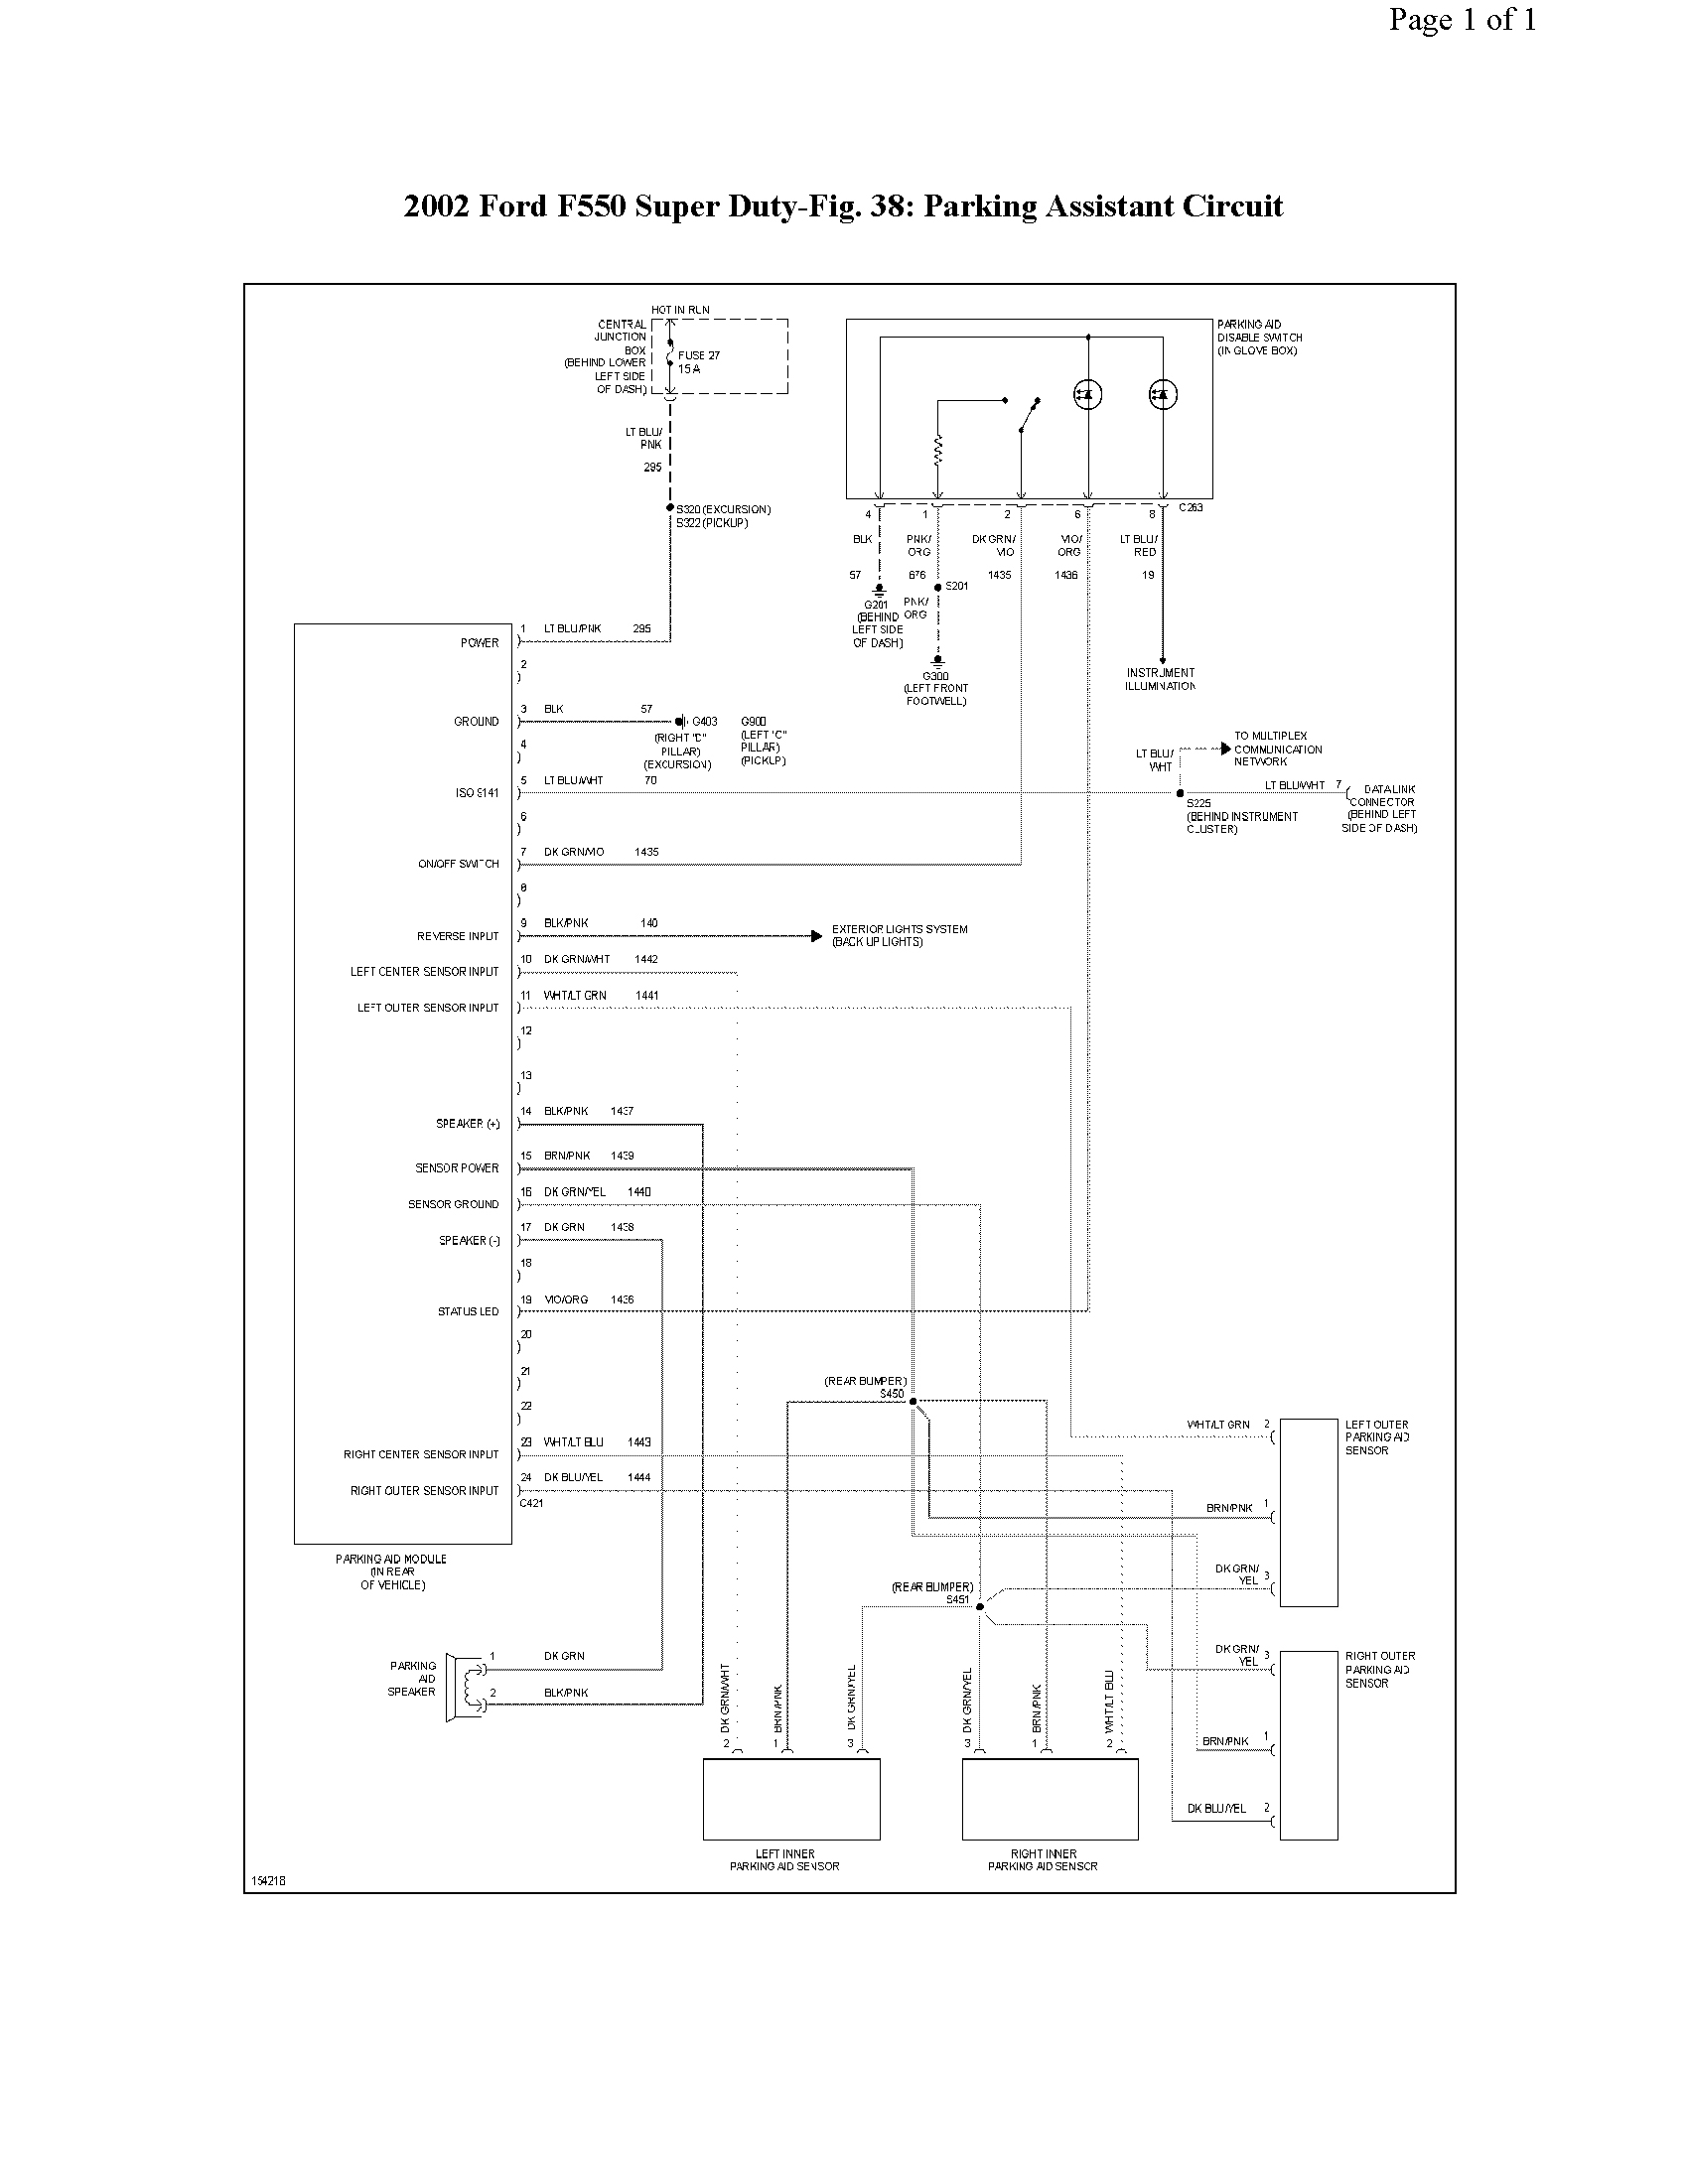 2002 ford excursion fuse panel wiring diagram database 2007 Ford F550 Fuse Diagram i am working on a 02 f550 super duty 7 3l 4wd fuse 44 kept blowing 2002 ford excursion starter circuit 2002 ford excursion fuse panel